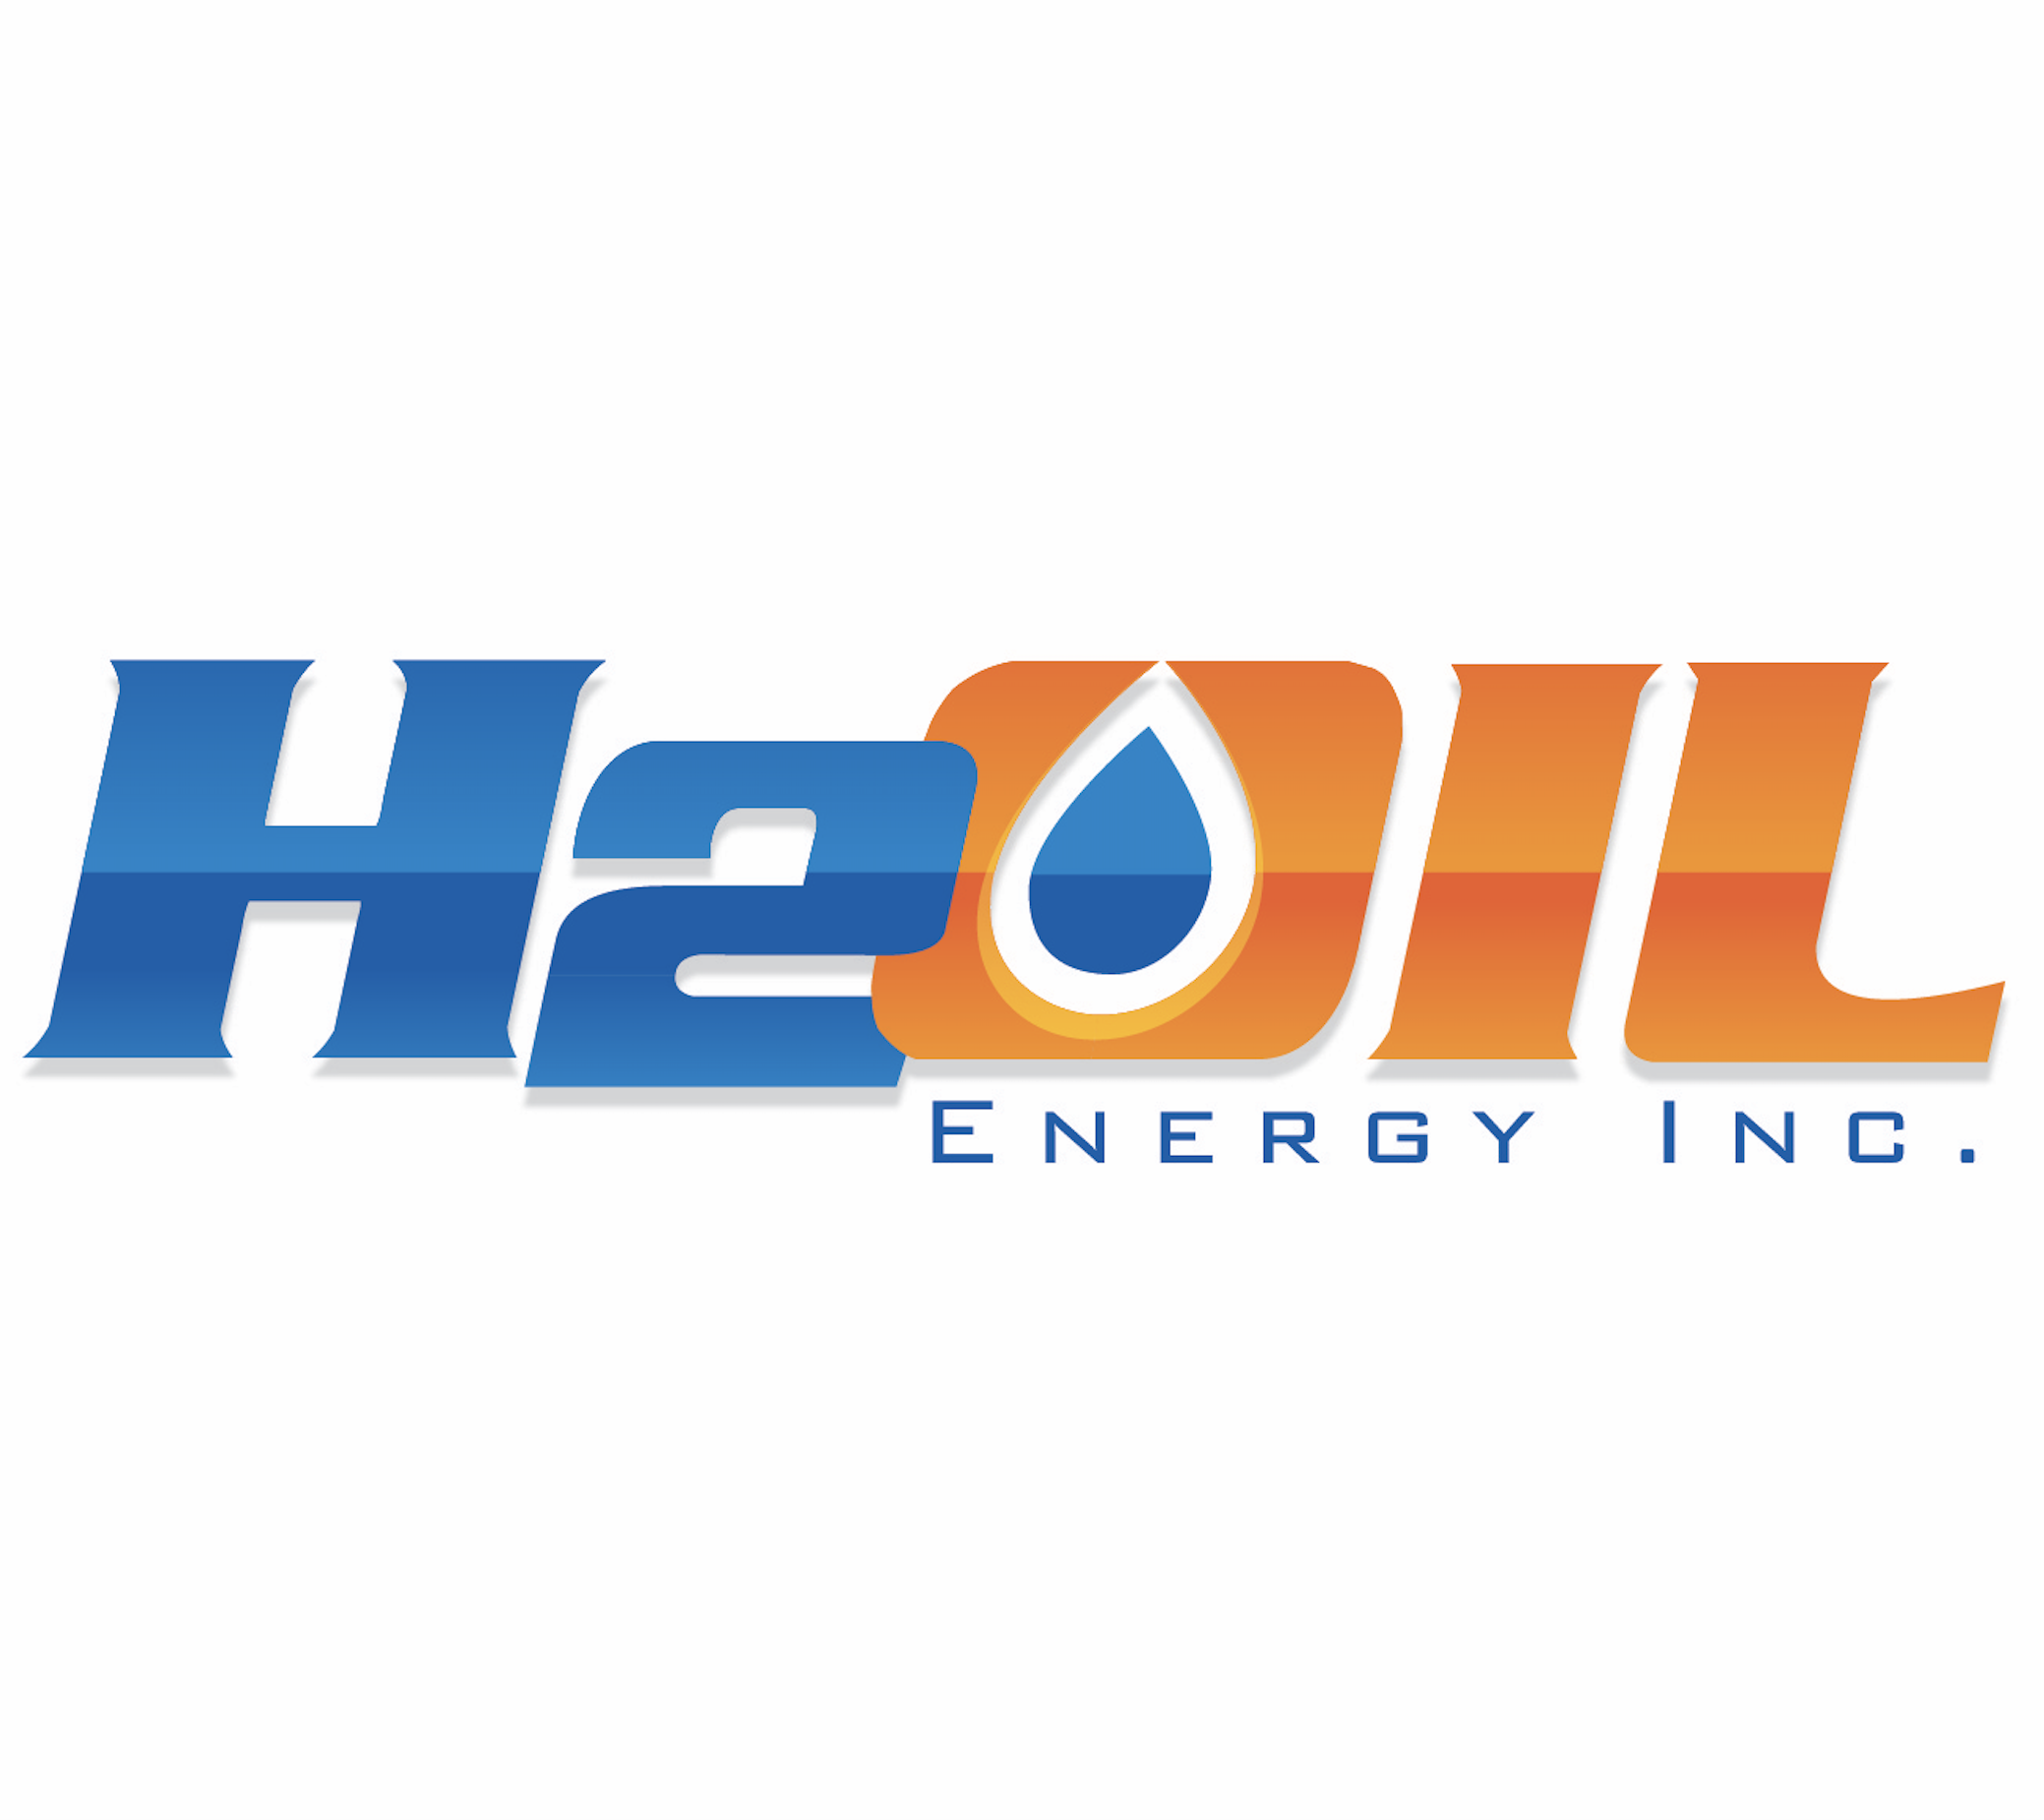 H2Oil Energy Inc.